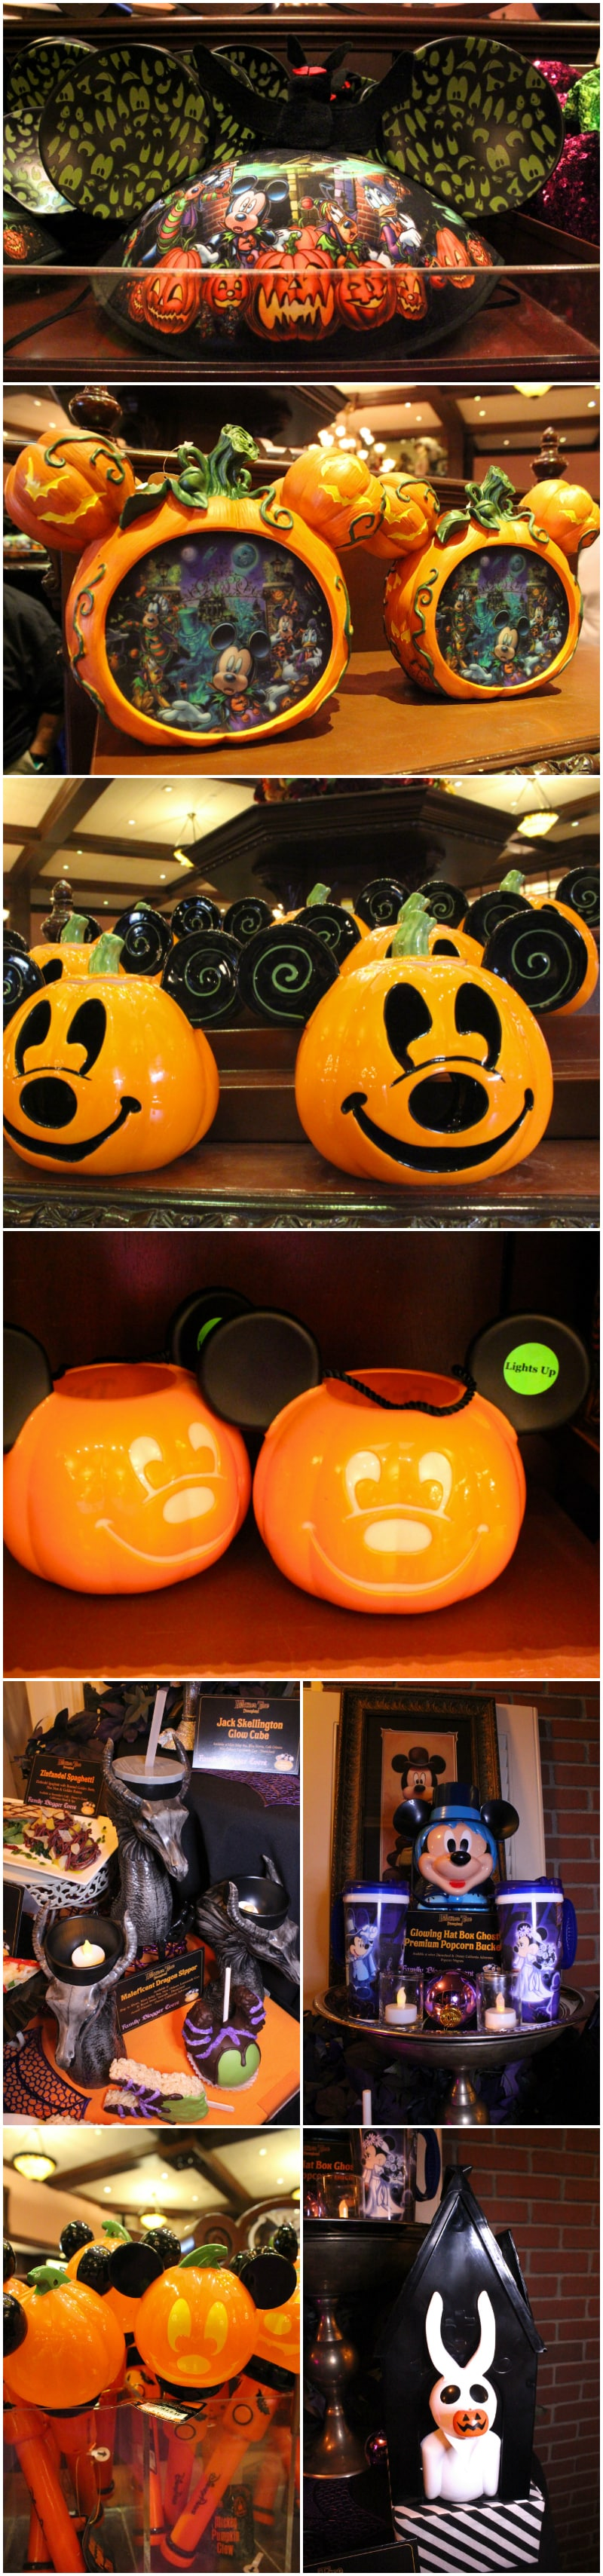 Disneyland-Halloween-Products